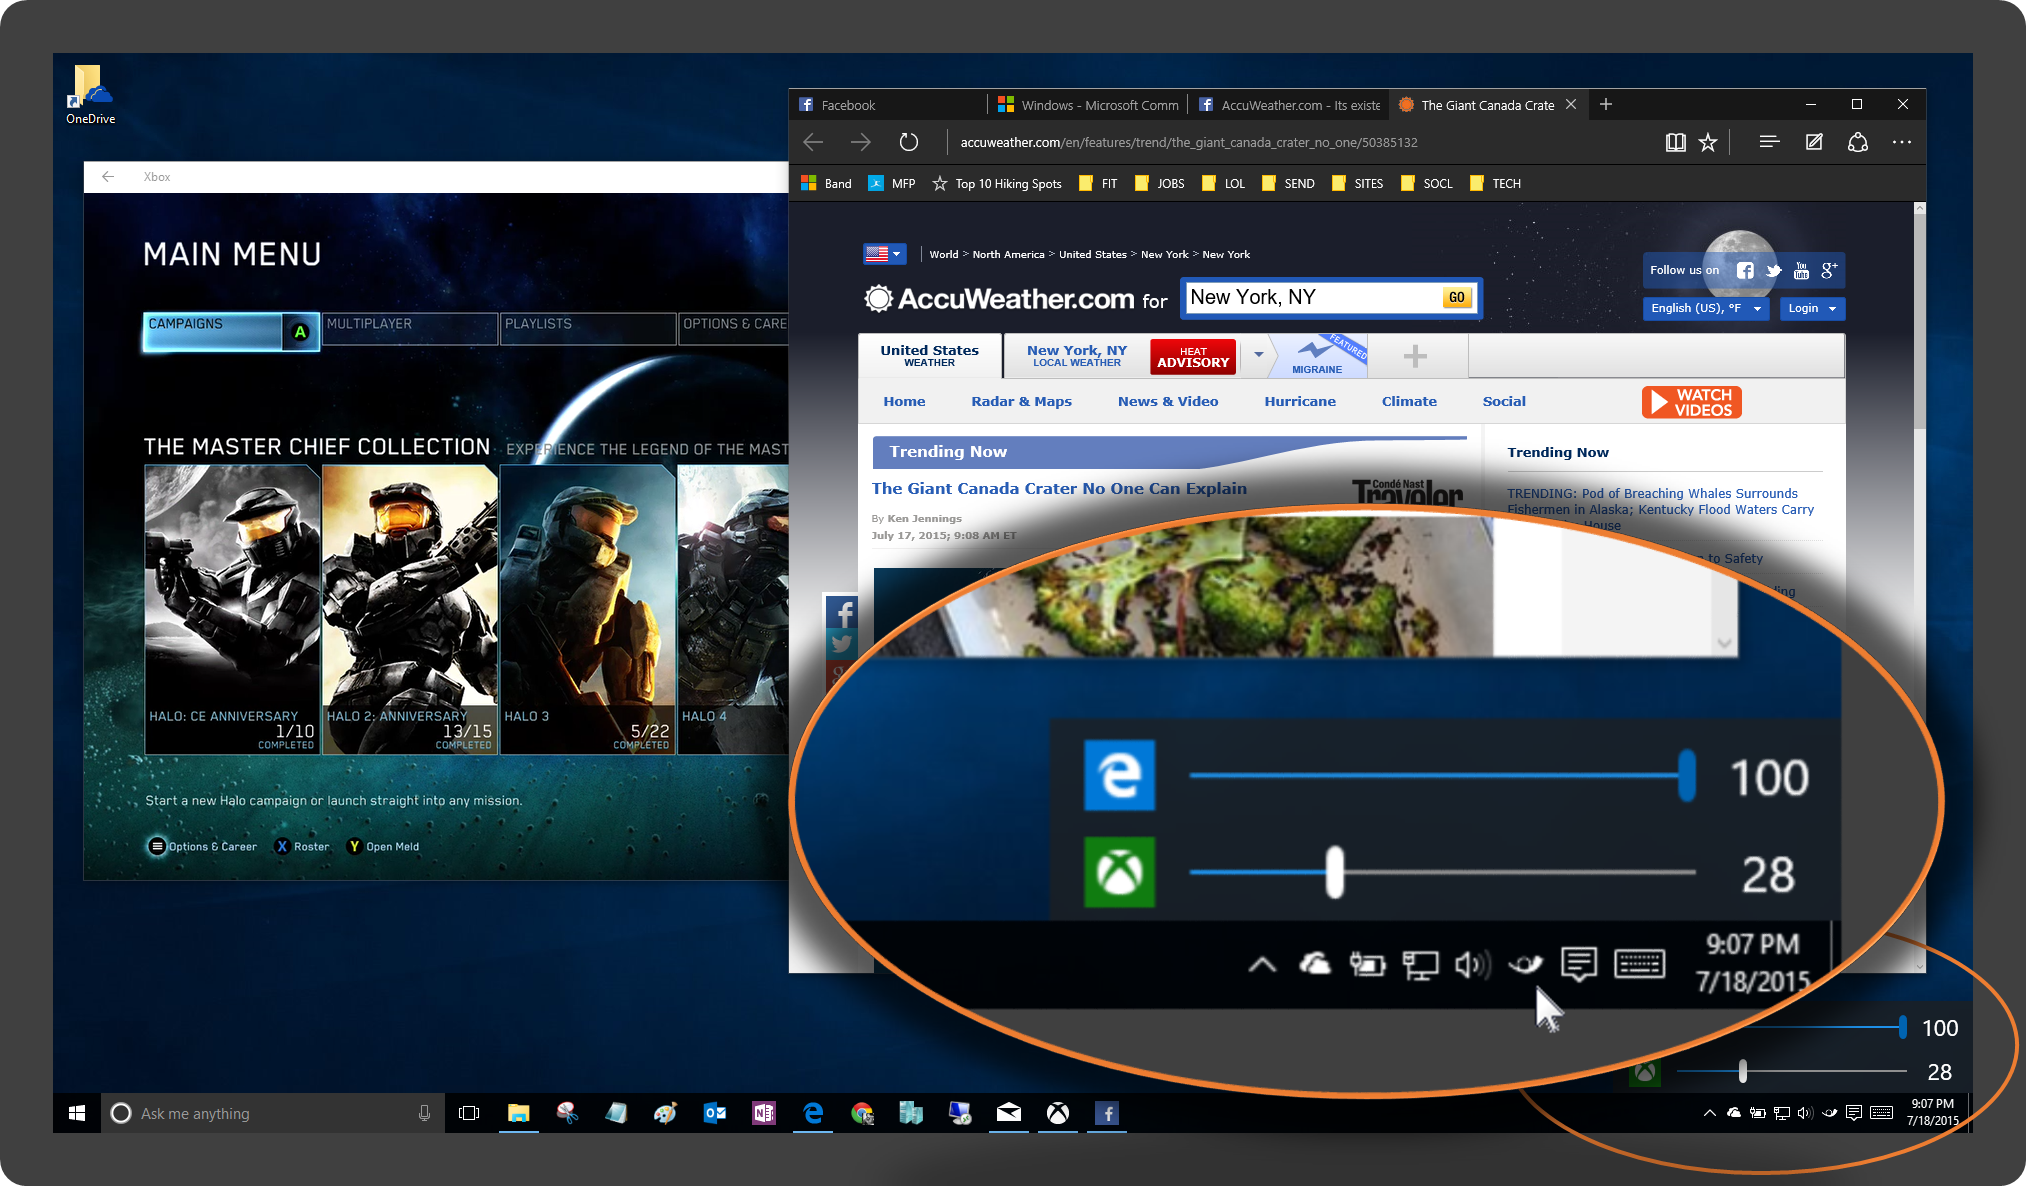 Windows 10 desktop showing the Ear Trumpet popup menu in the taskbar notification area.